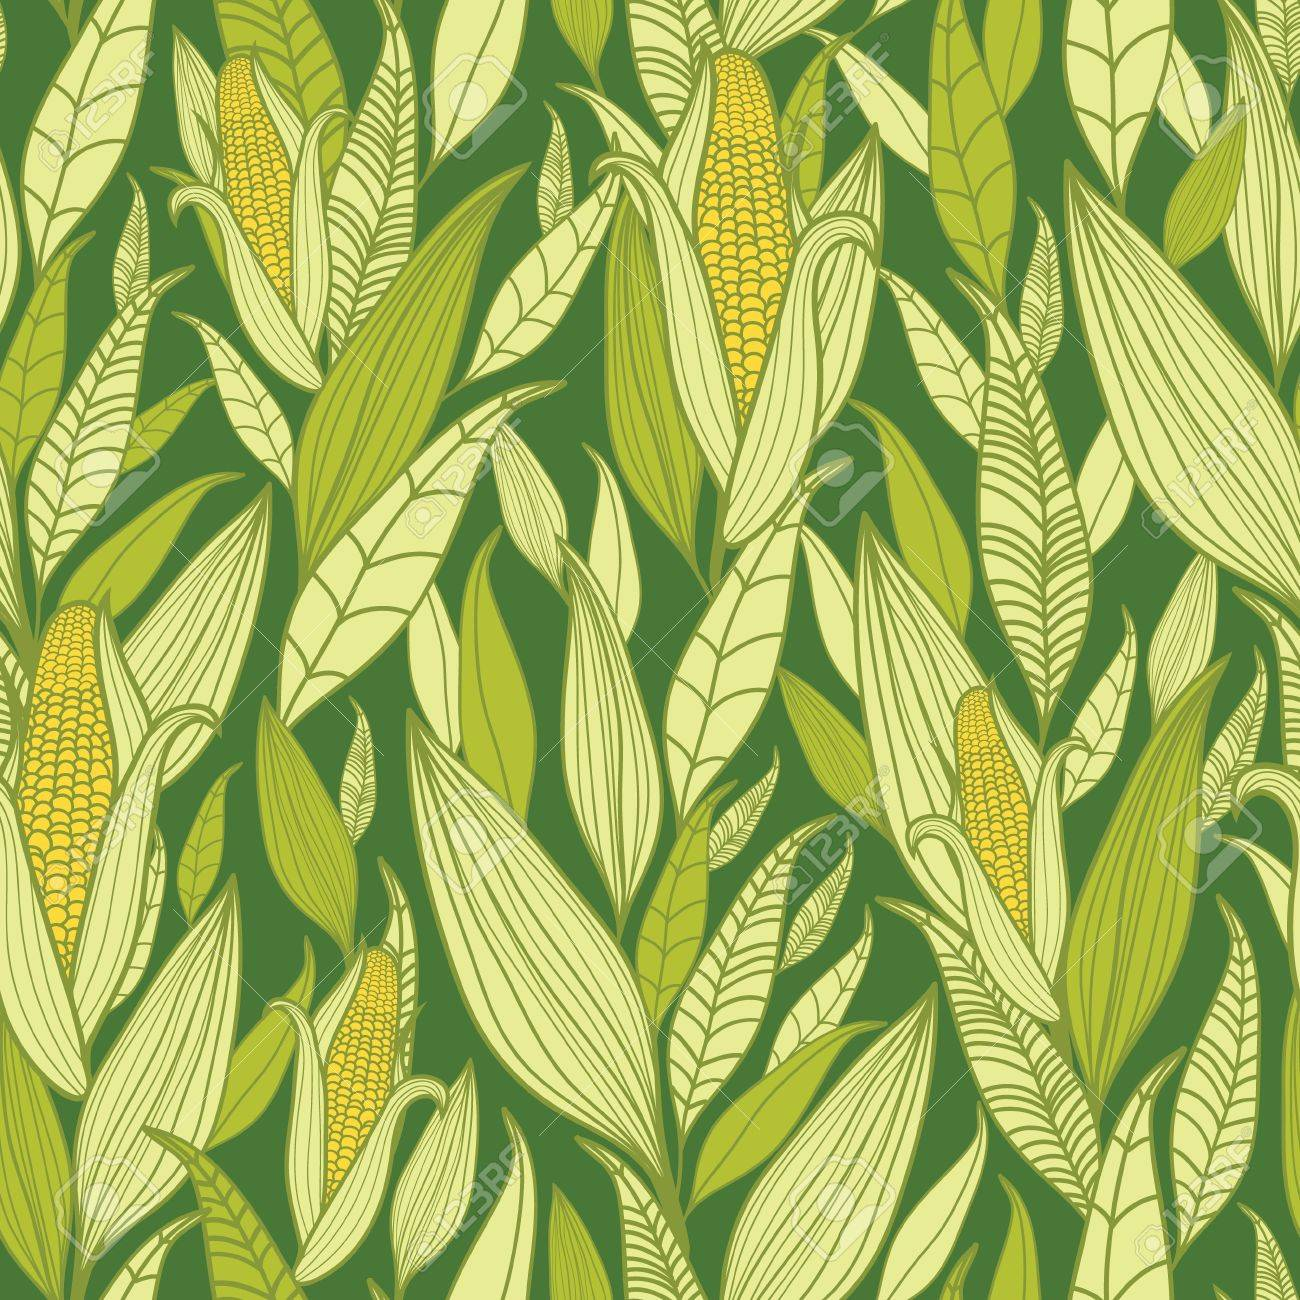 Corn plants seamless pattern background Stock Vector - 16675756